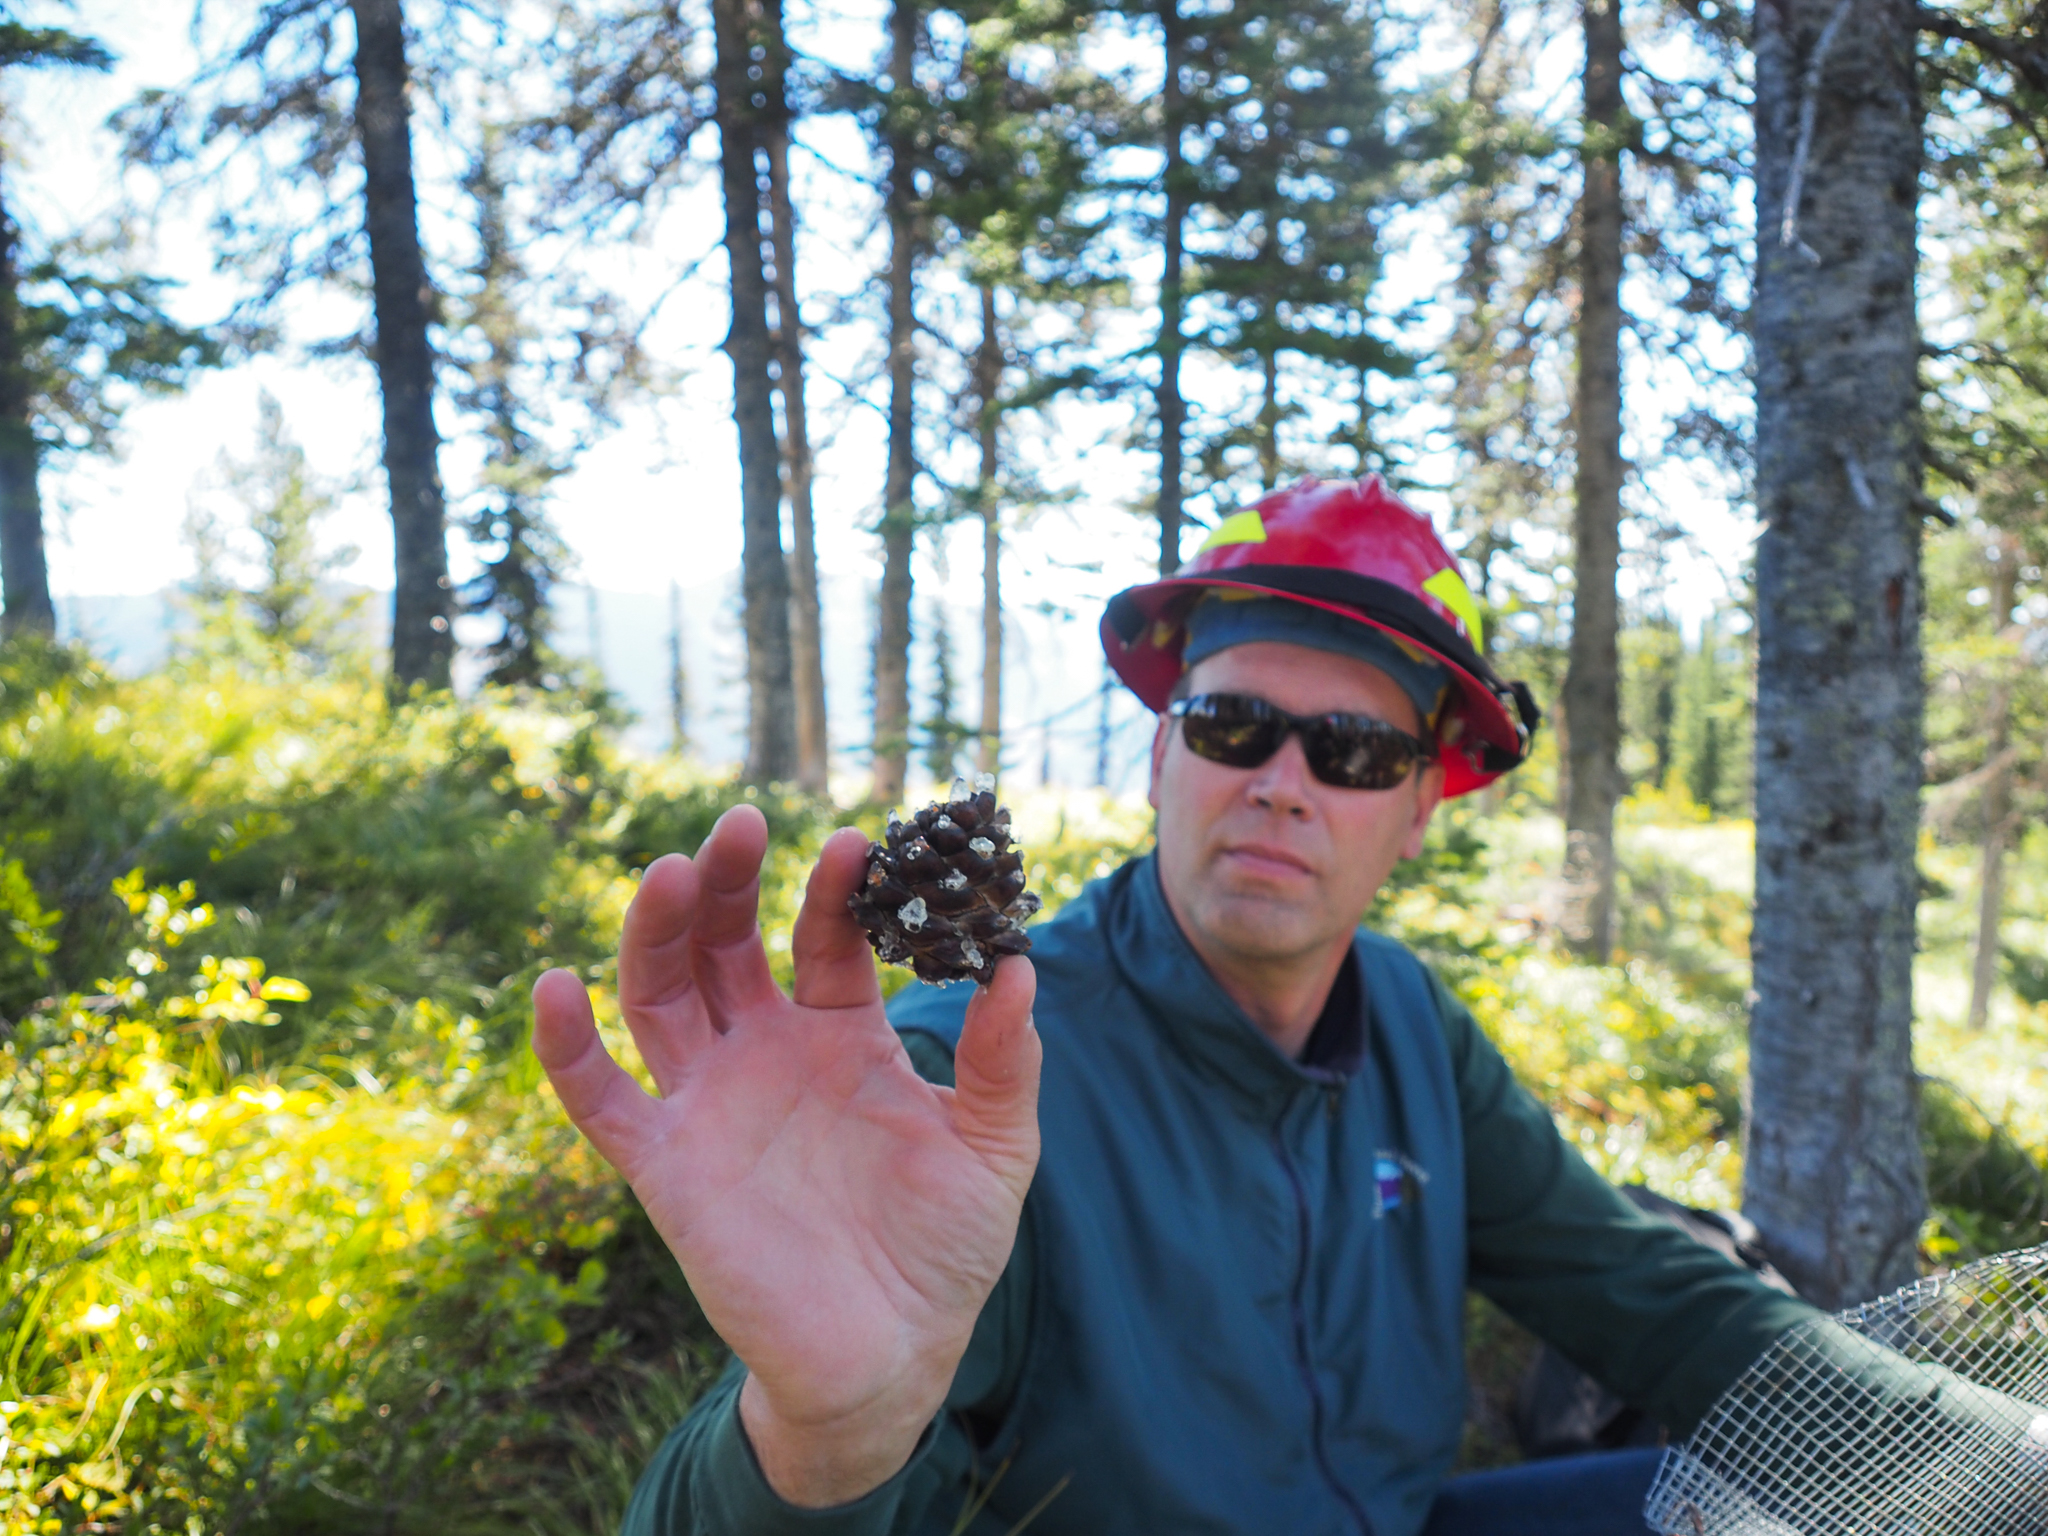 Forester Karl Anderson holds up a pine cone collected from a whitebark pine that is resistant to the blister rust fungus—Flathead National Forest, Montana.